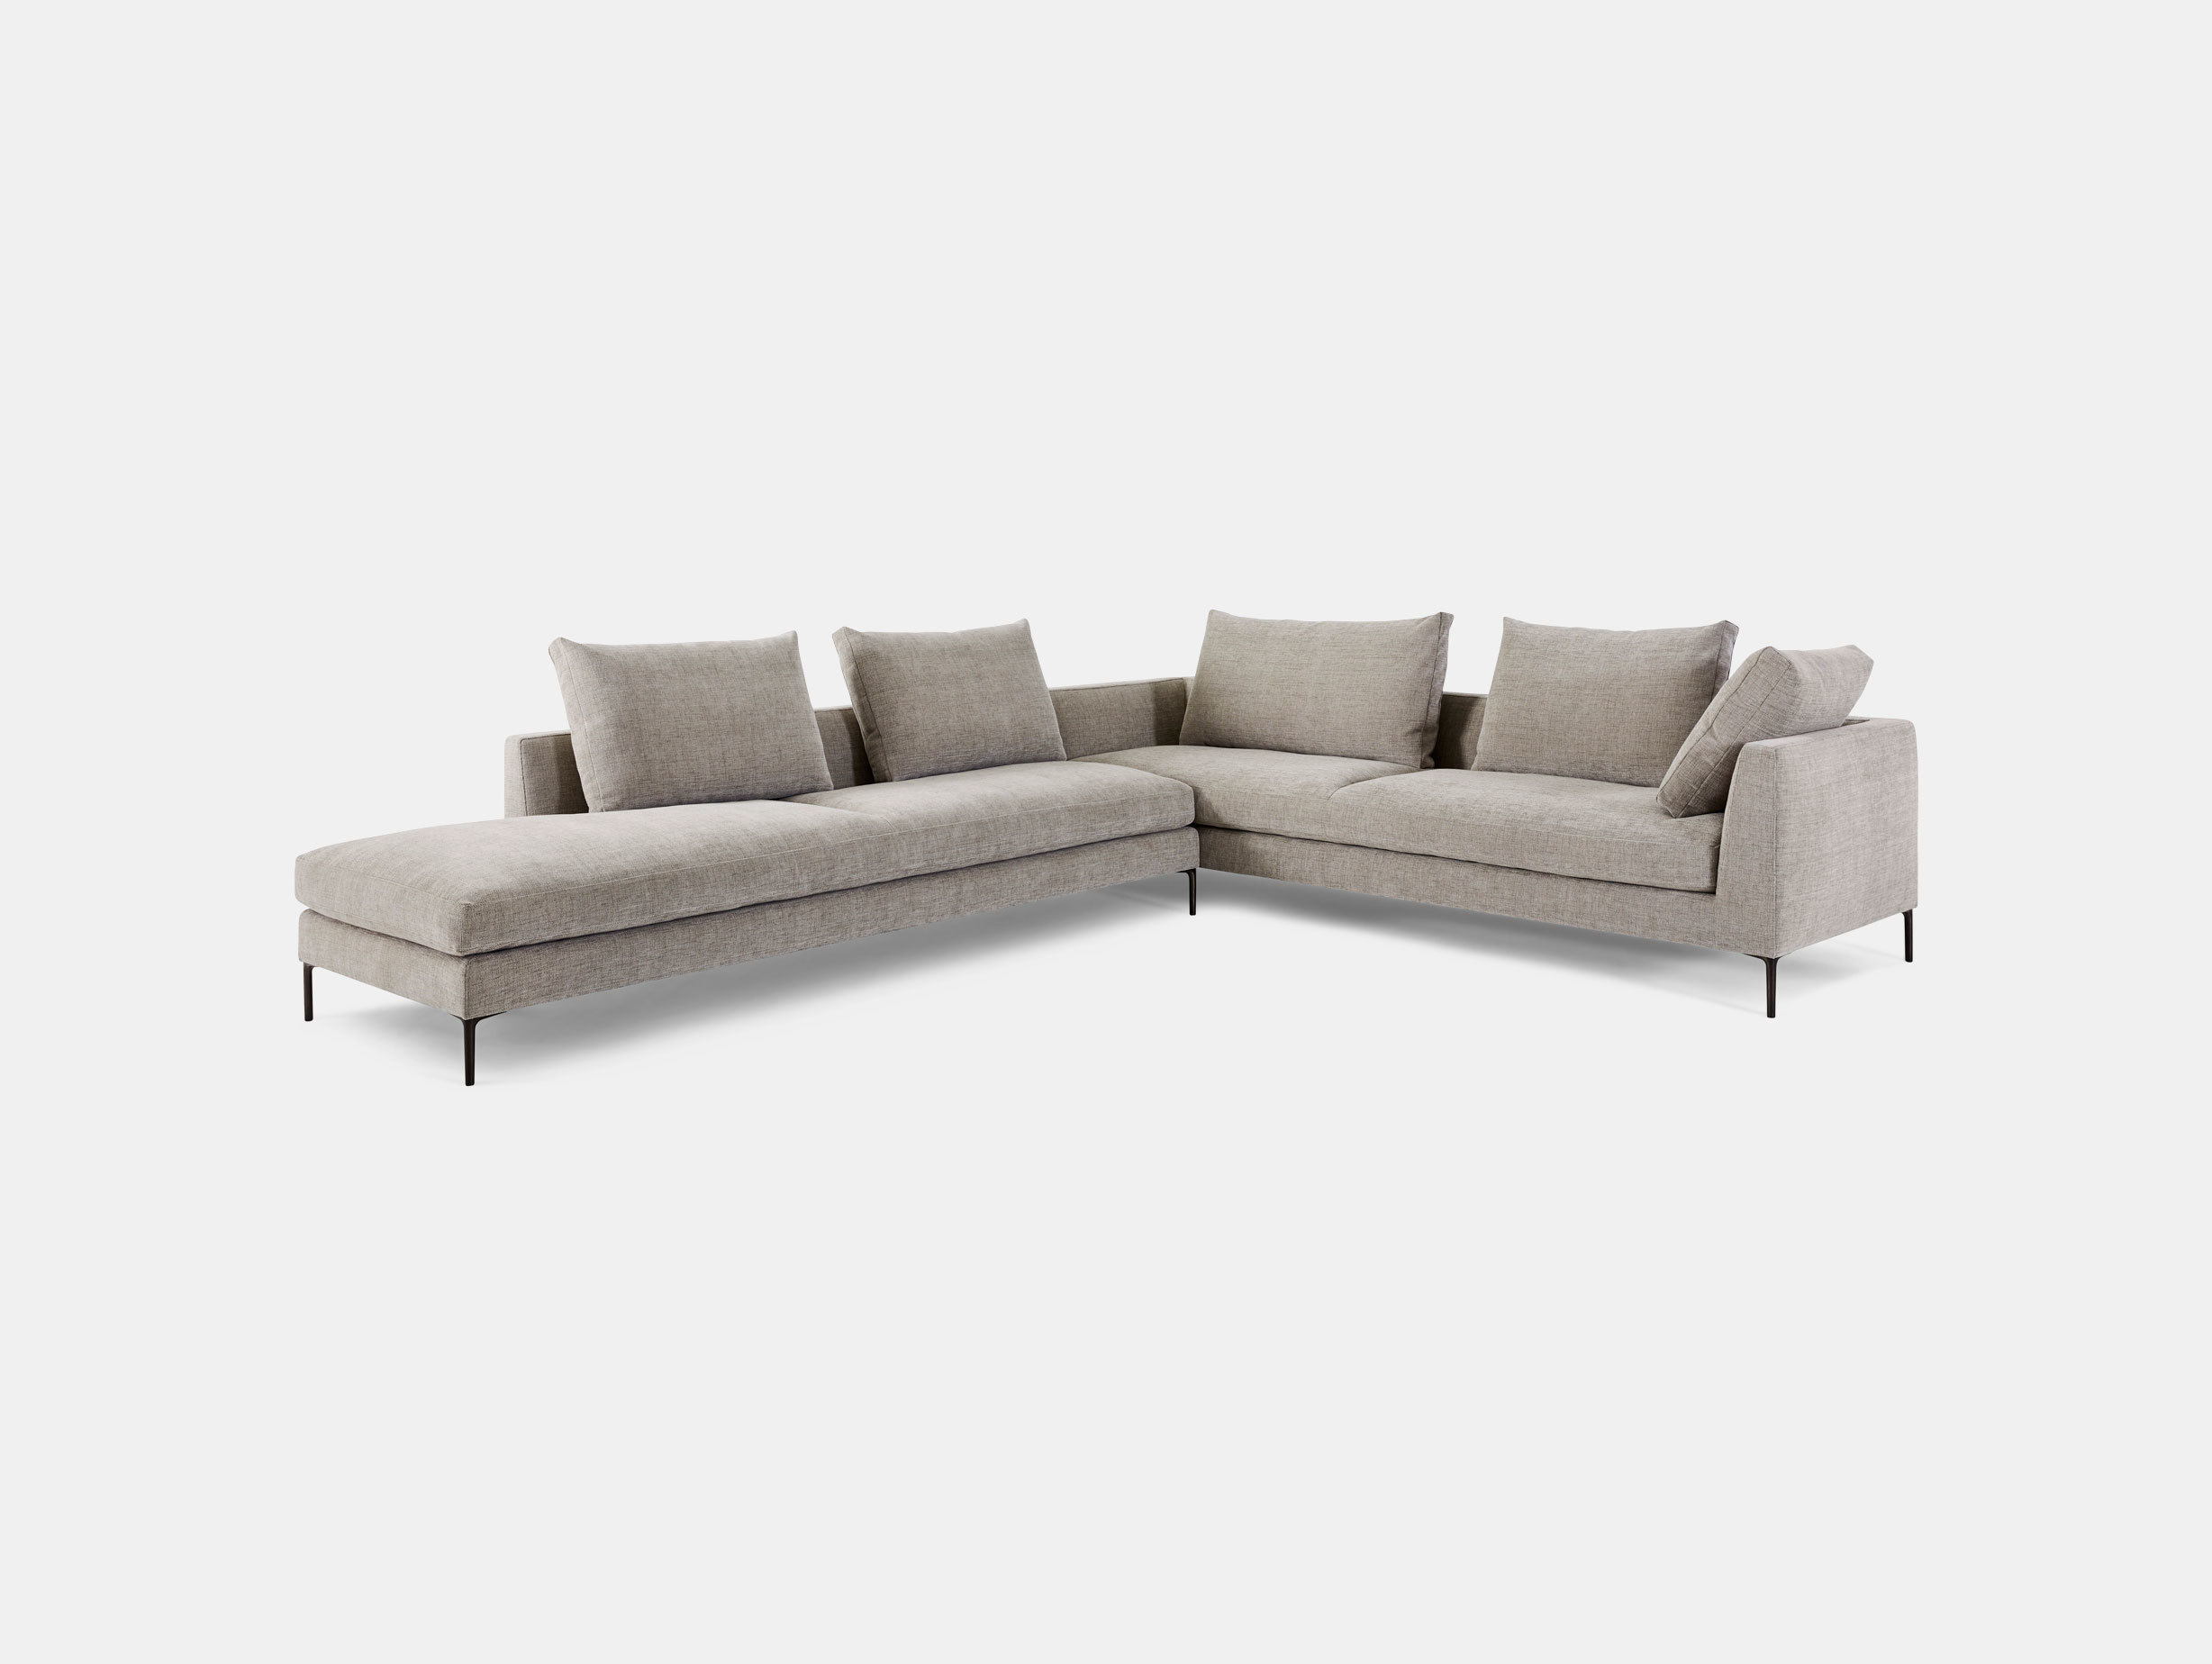 Montis Daley Sofa 3